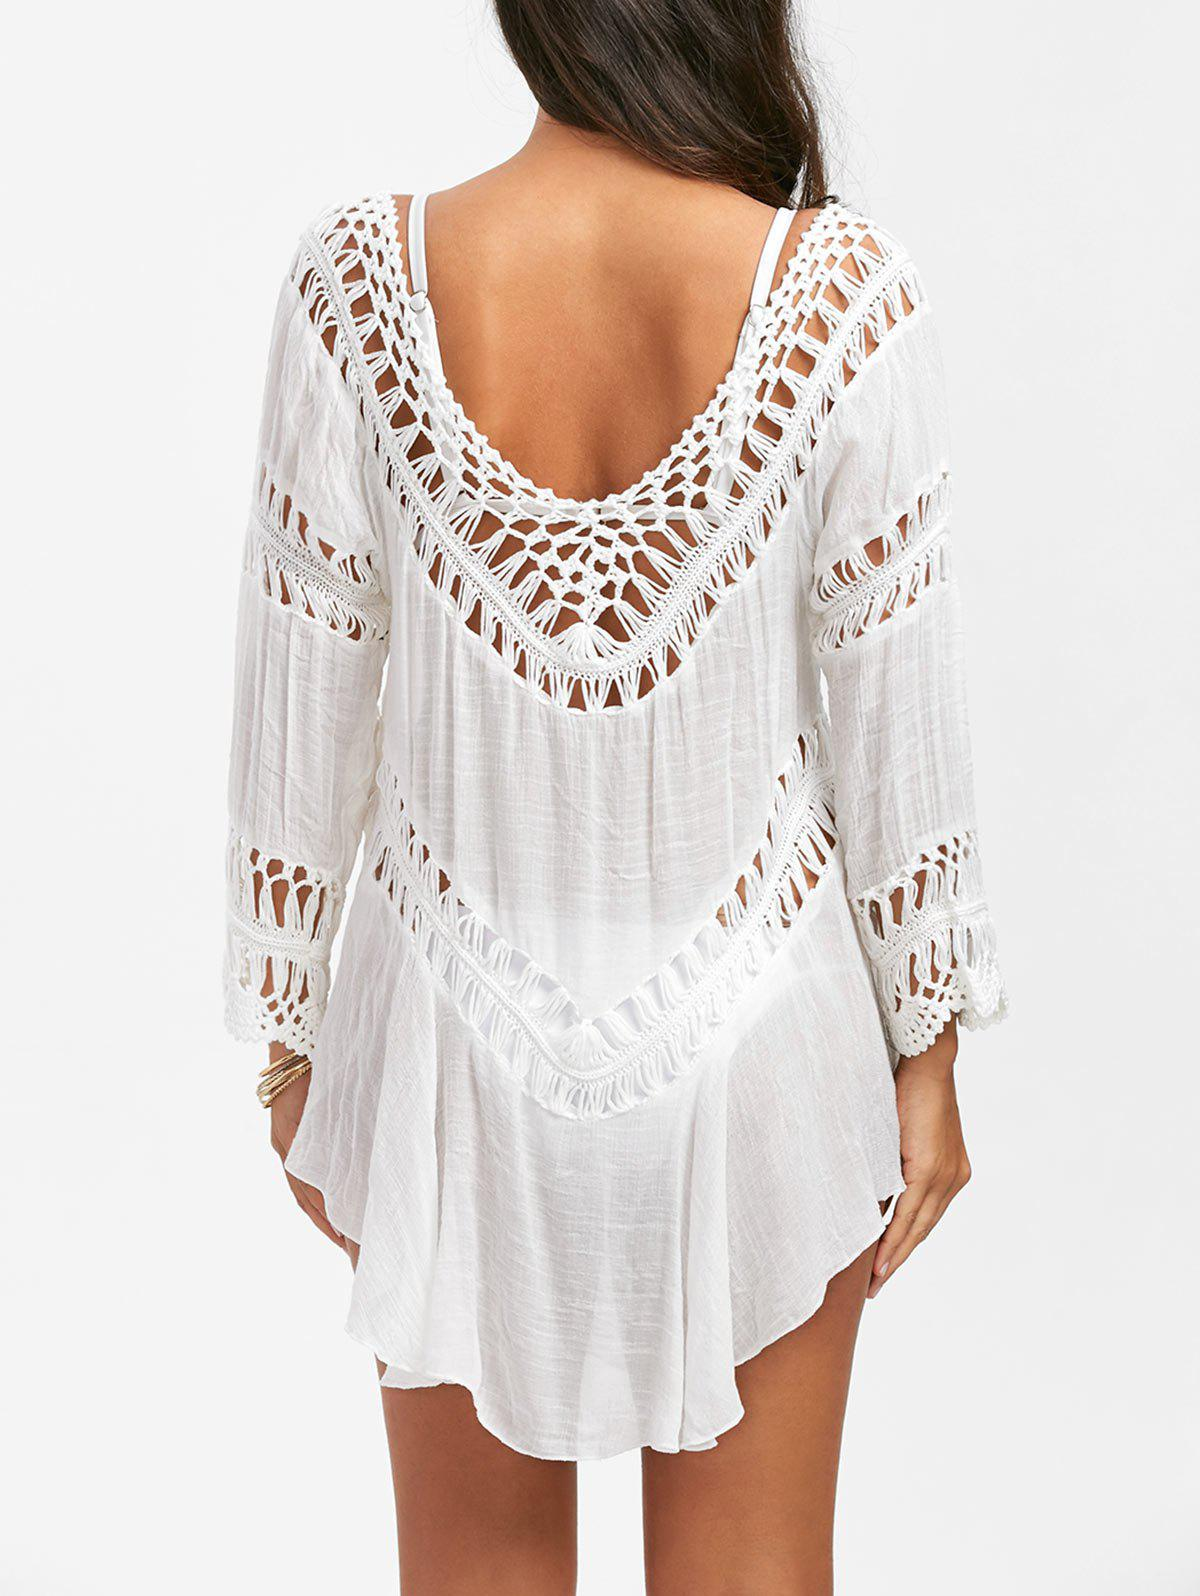 Crochet Panel Swing Beach Tunic Cover UpWOMEN<br><br>Size: ONE SIZE; Color: WHITE; Cover-Up Type: Dress; Gender: For Women; Material: Polyester; Neckline: U Neck; Pattern Type: Solid; Embellishment: Crochet; Waist: Natural; Weight: 0.3200kg; Package Contents: 1 x Cover Up;